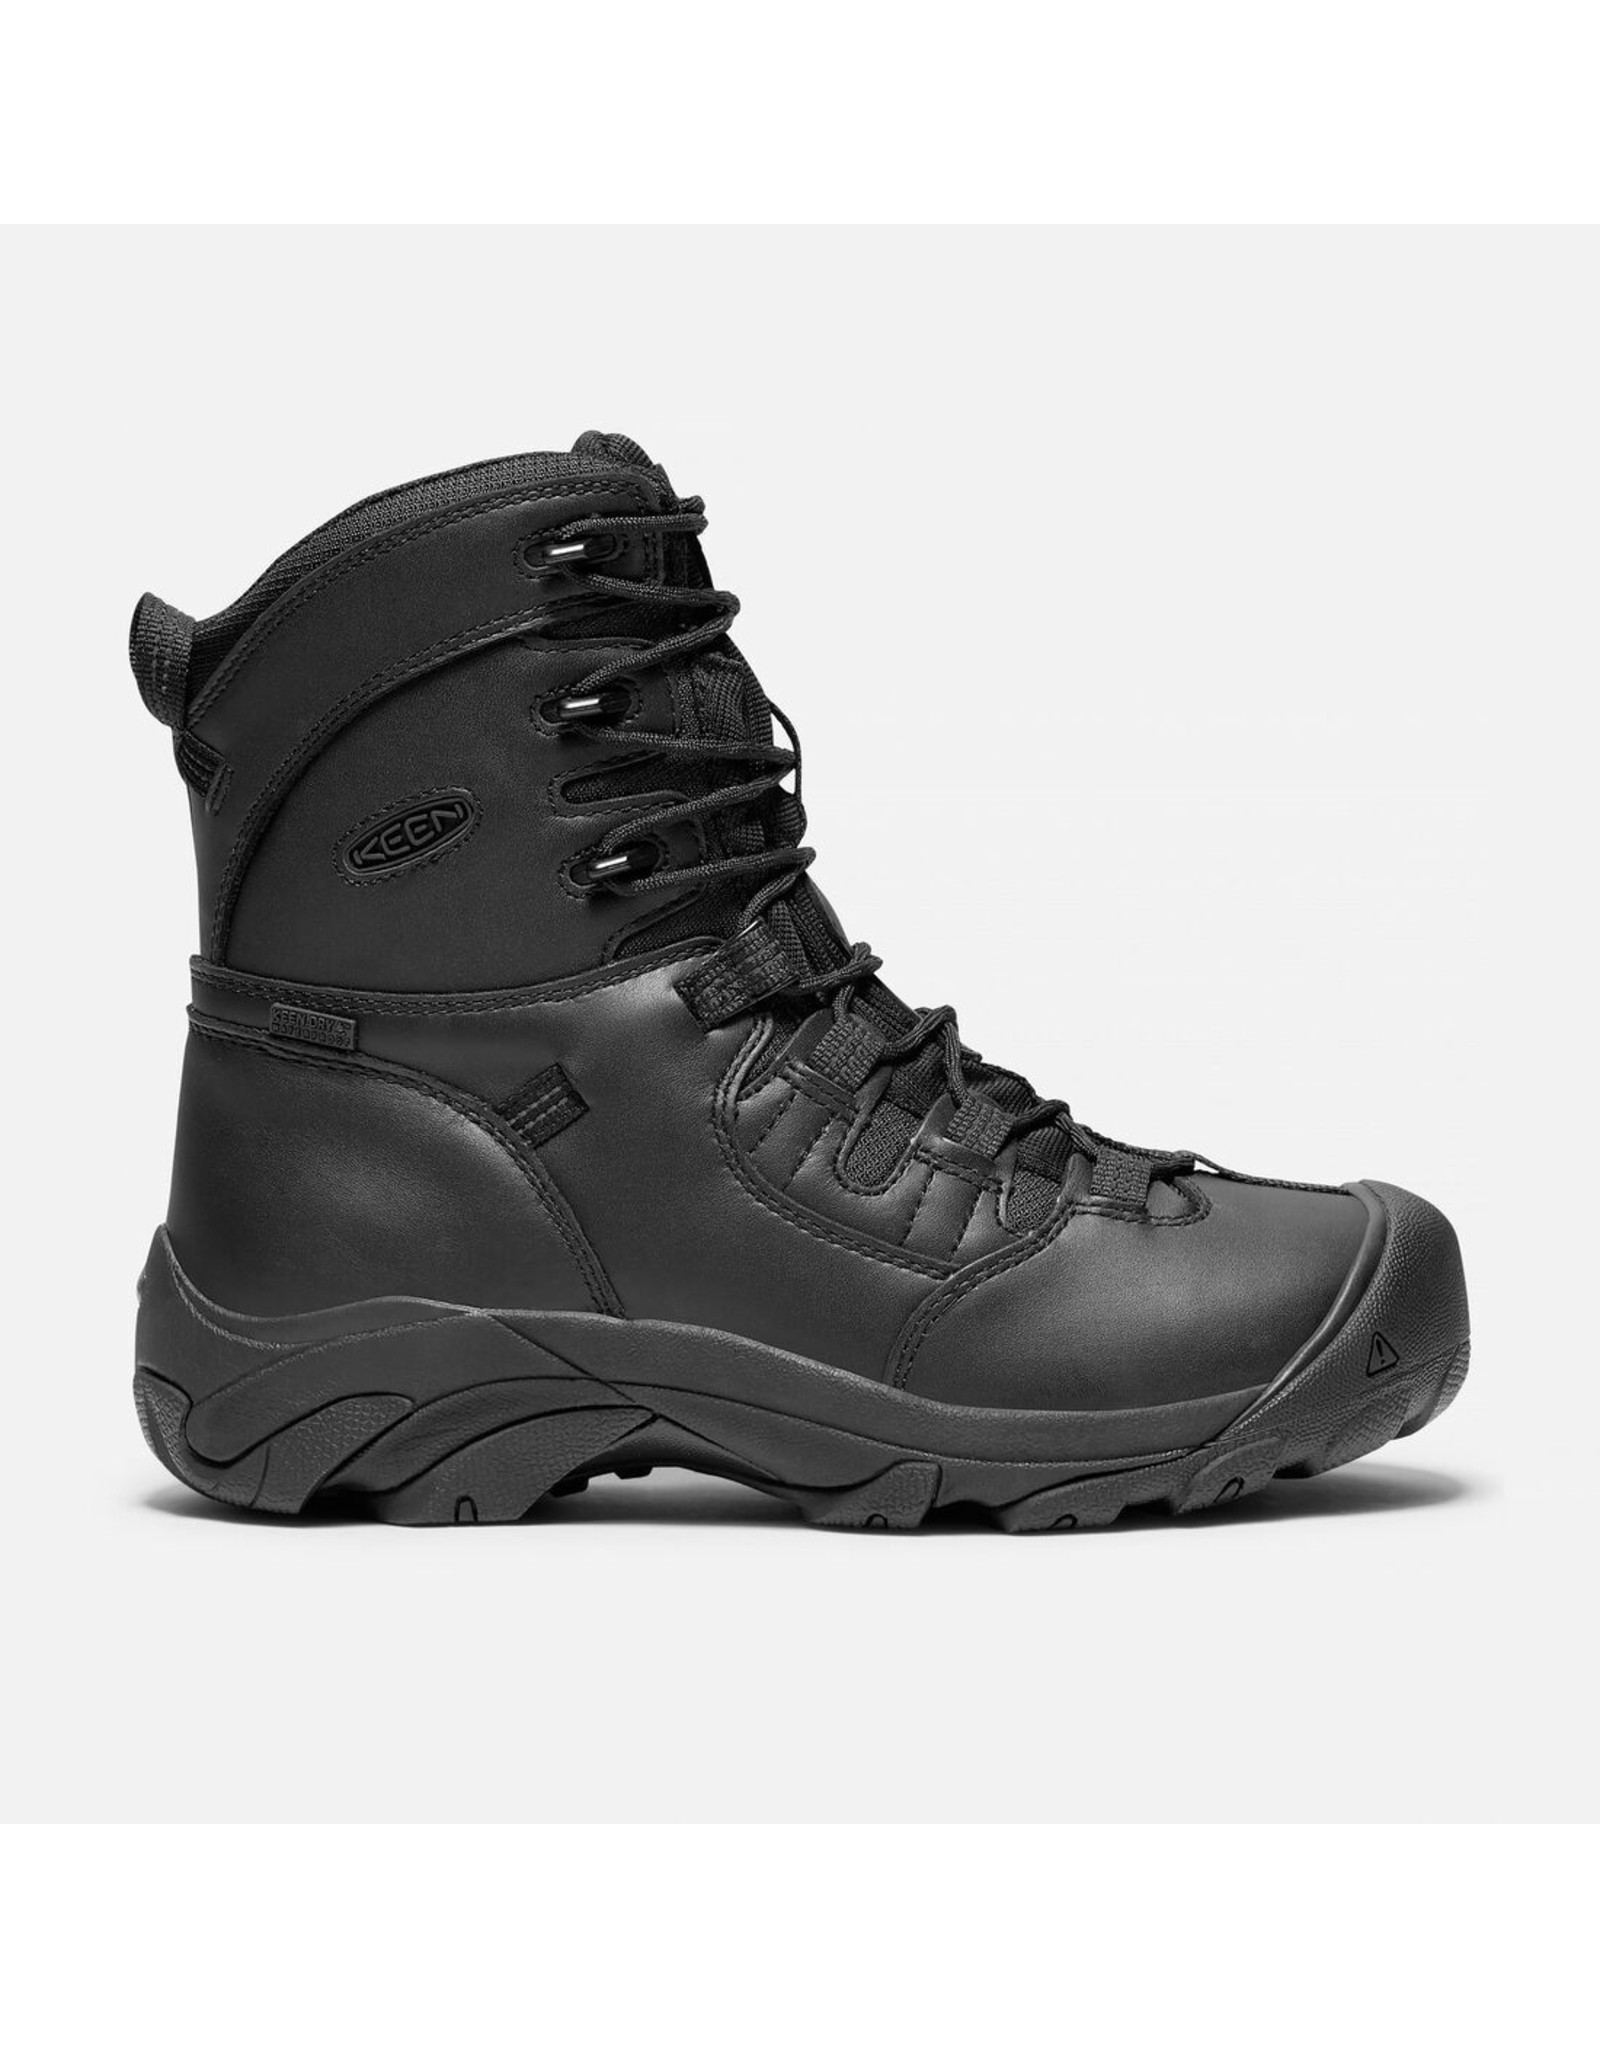 "KEEN FOOTWEAR KEEN DETROIT SOFTTOE 8"" BOOT (MEN'S)"